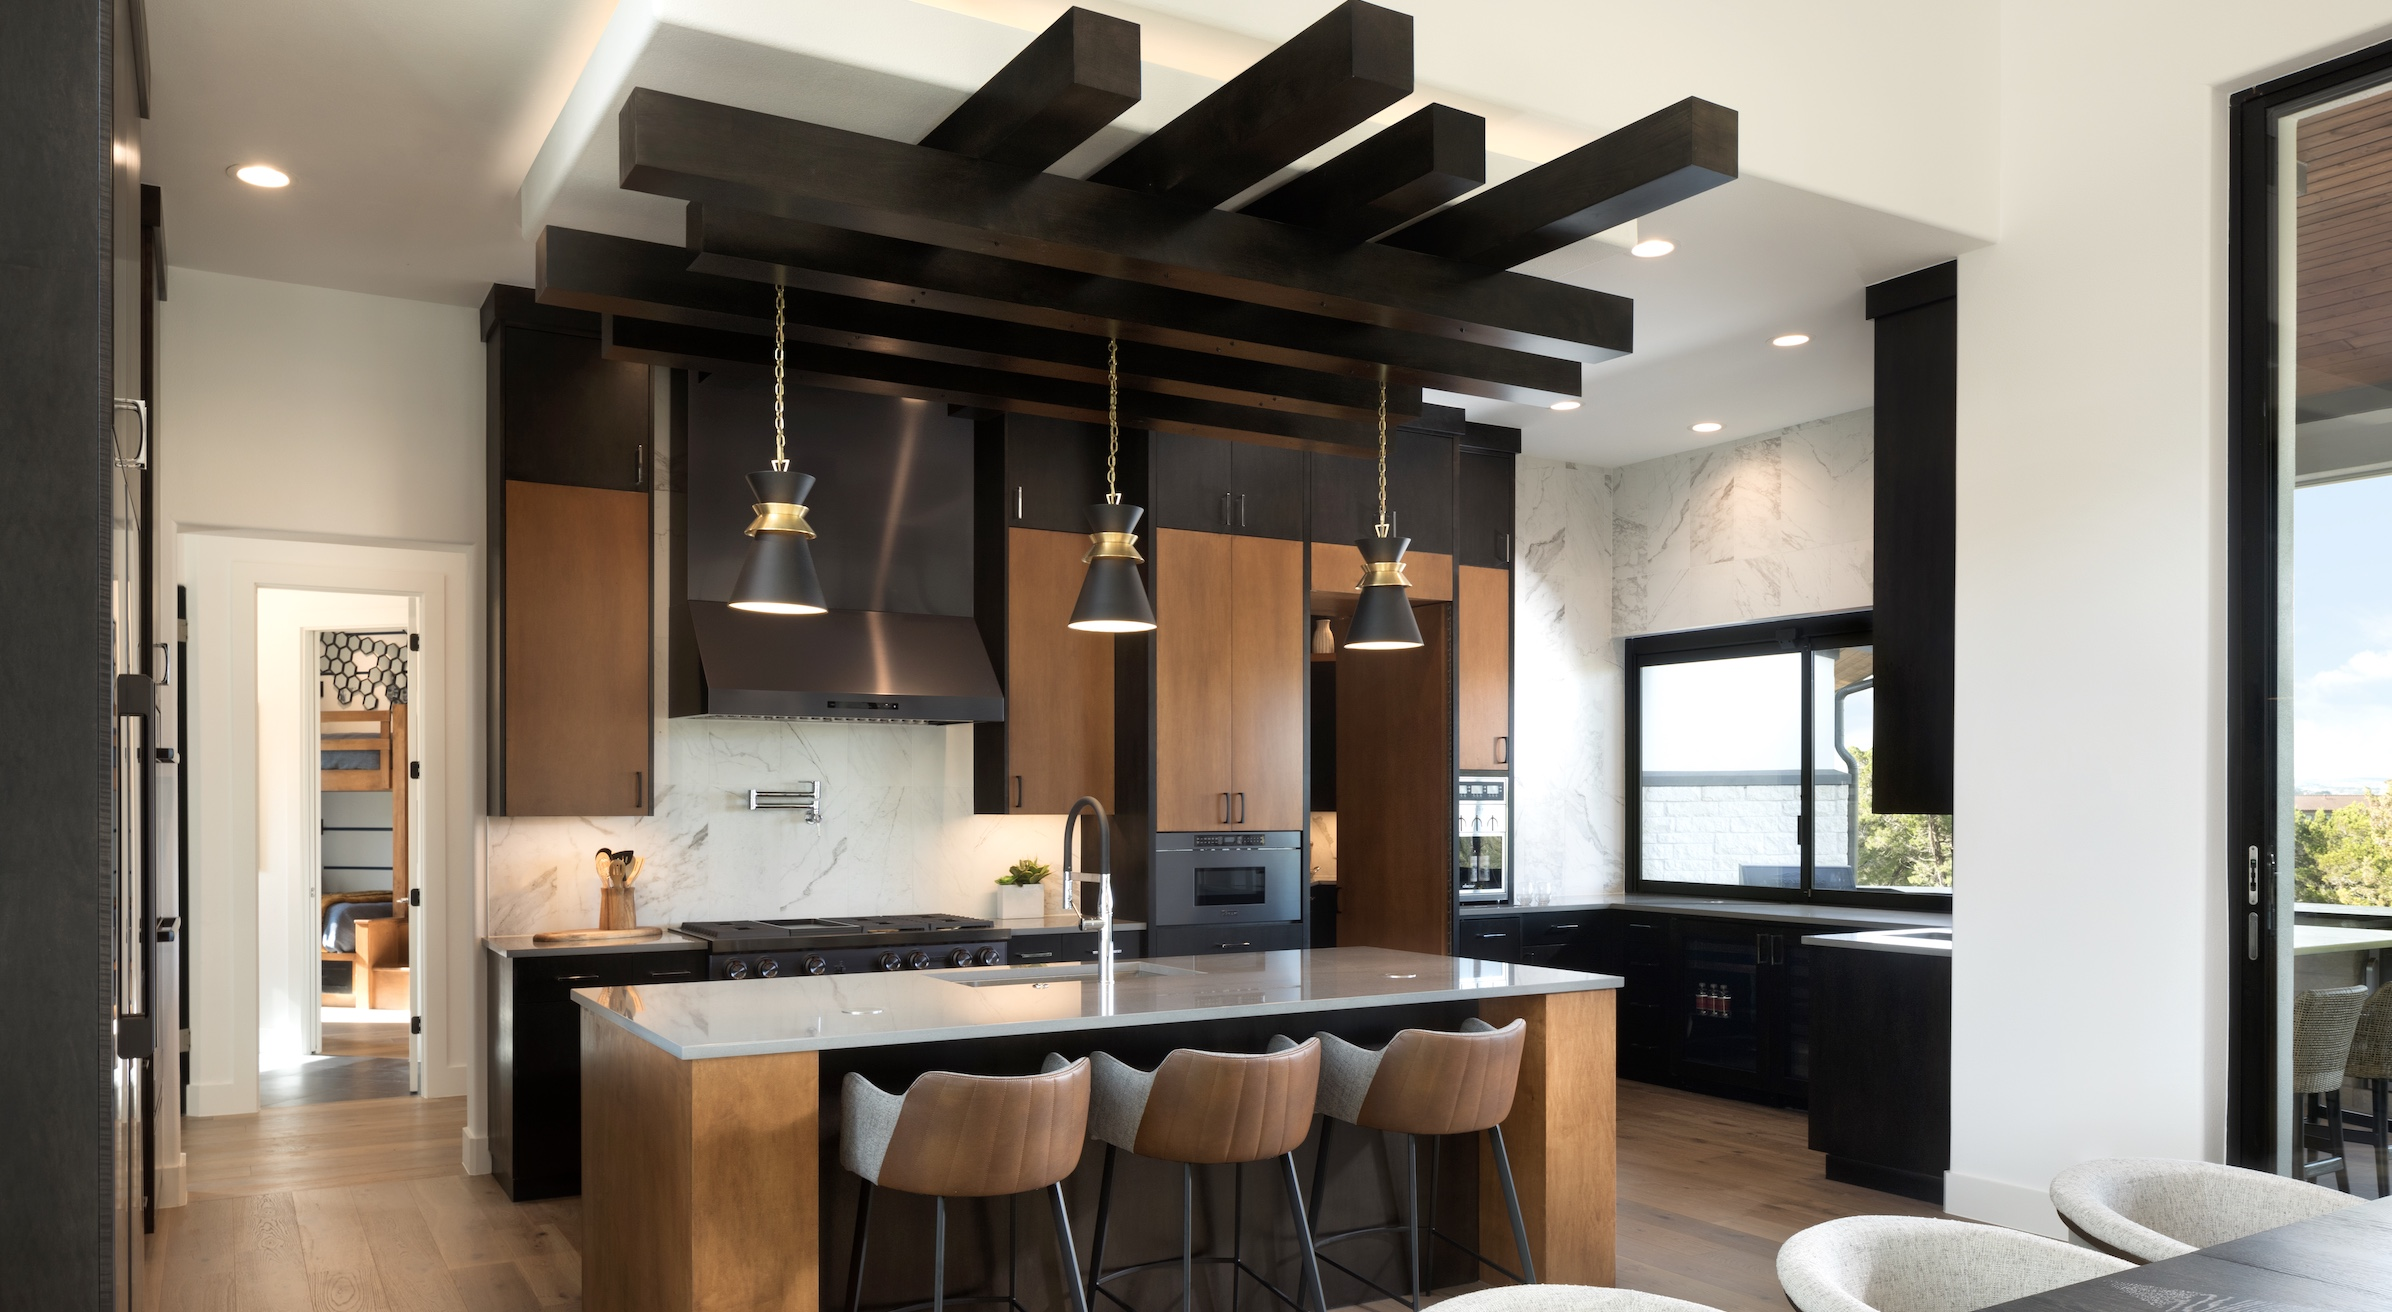 Black and wood in the kitchen with a custom treatment for the ceiling